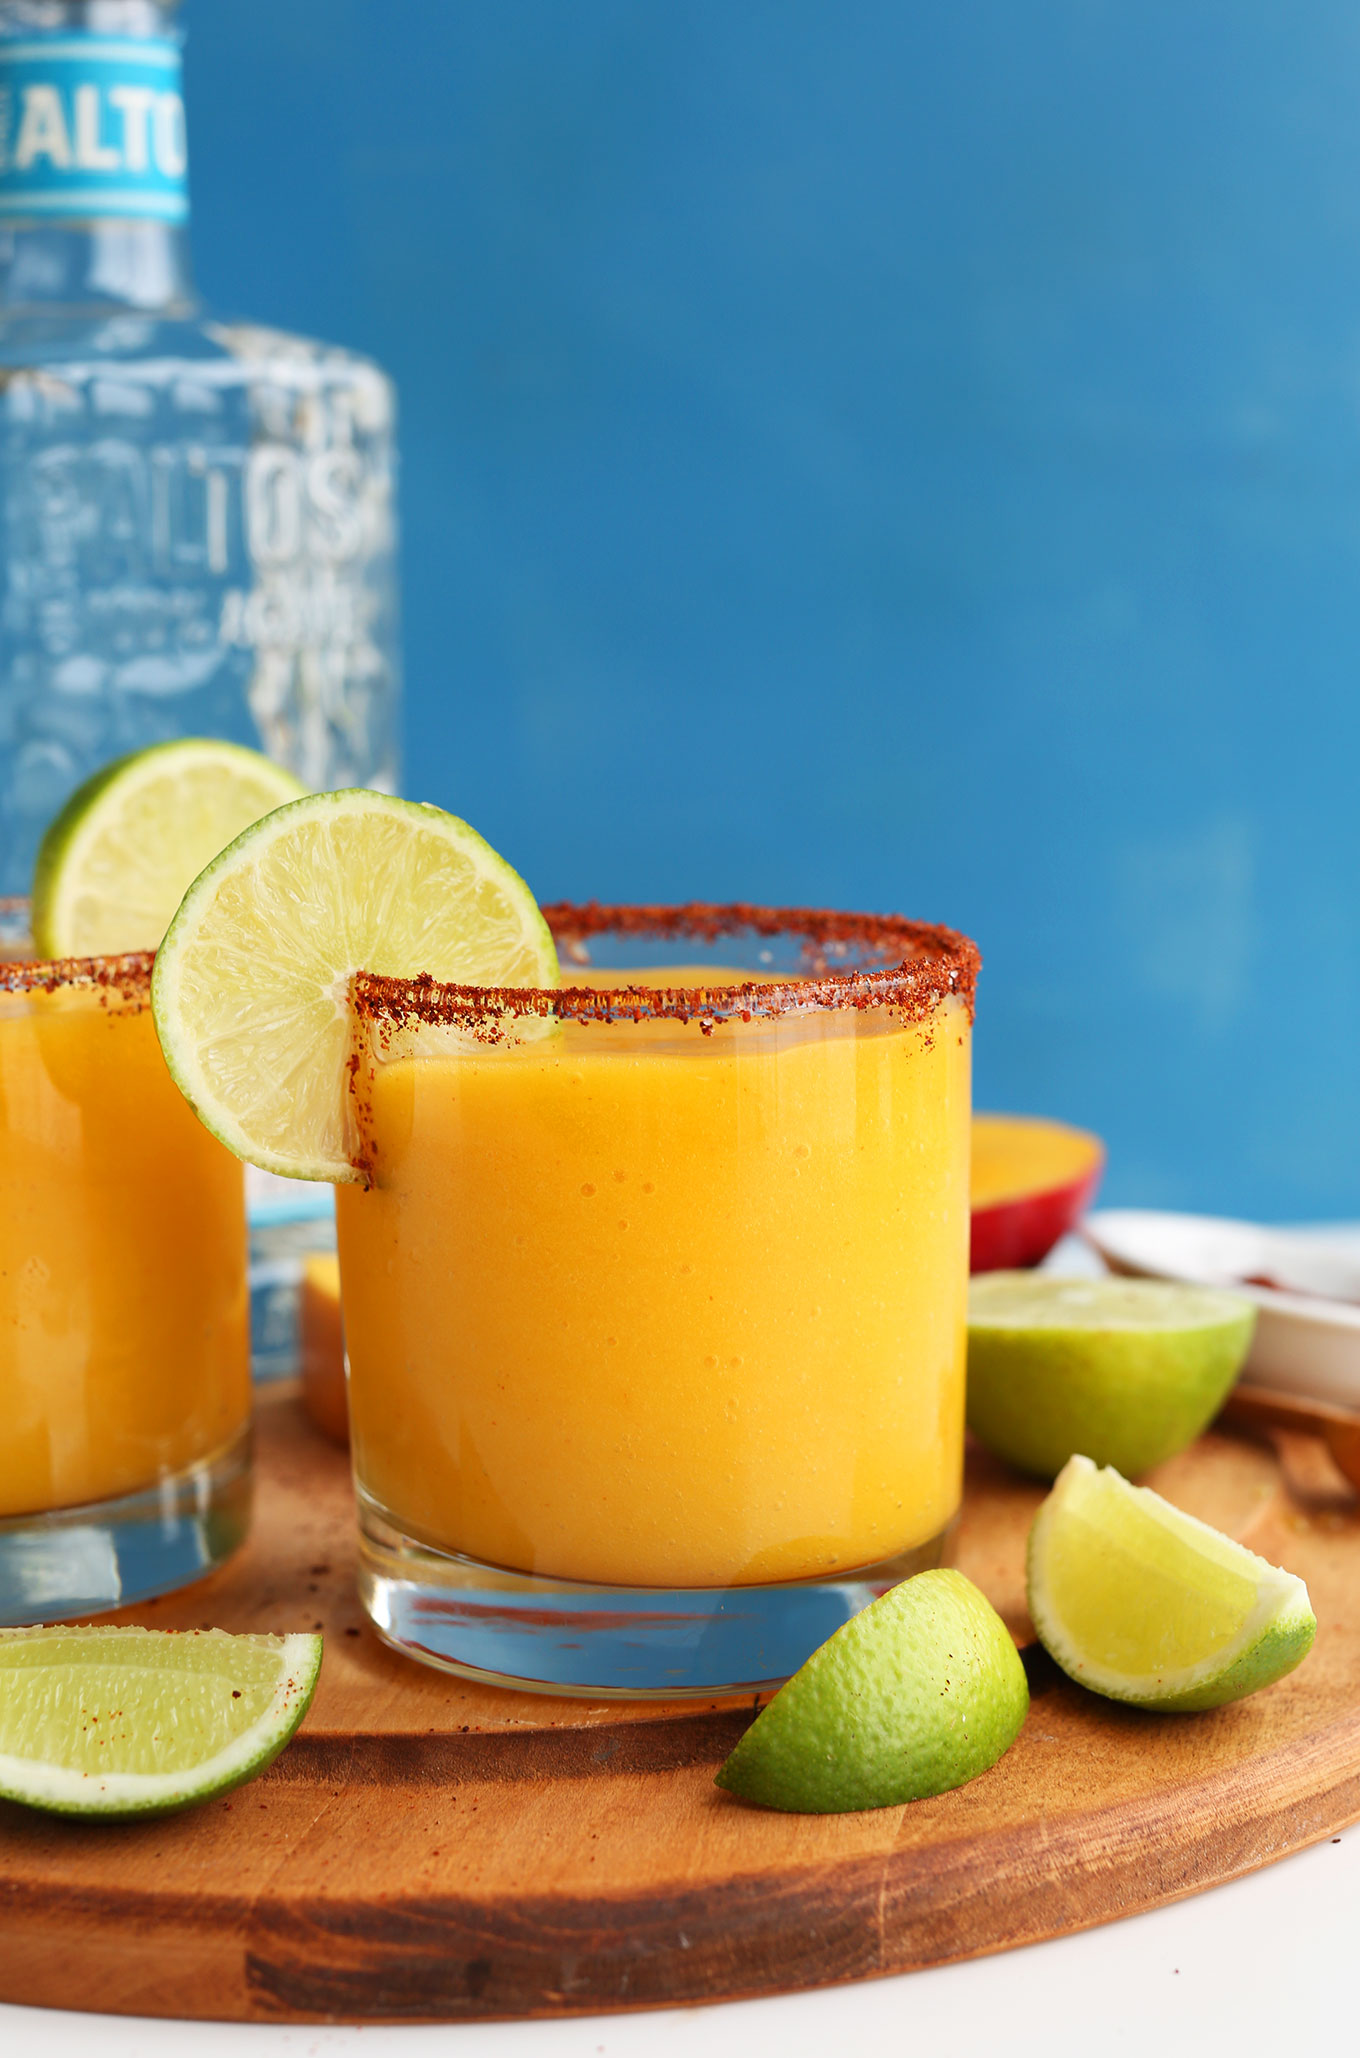 Chili, Lime, and Mango Margaritas | 21 Easy Brunch Cocktails For Your Weekend Party With Your Girlfriends